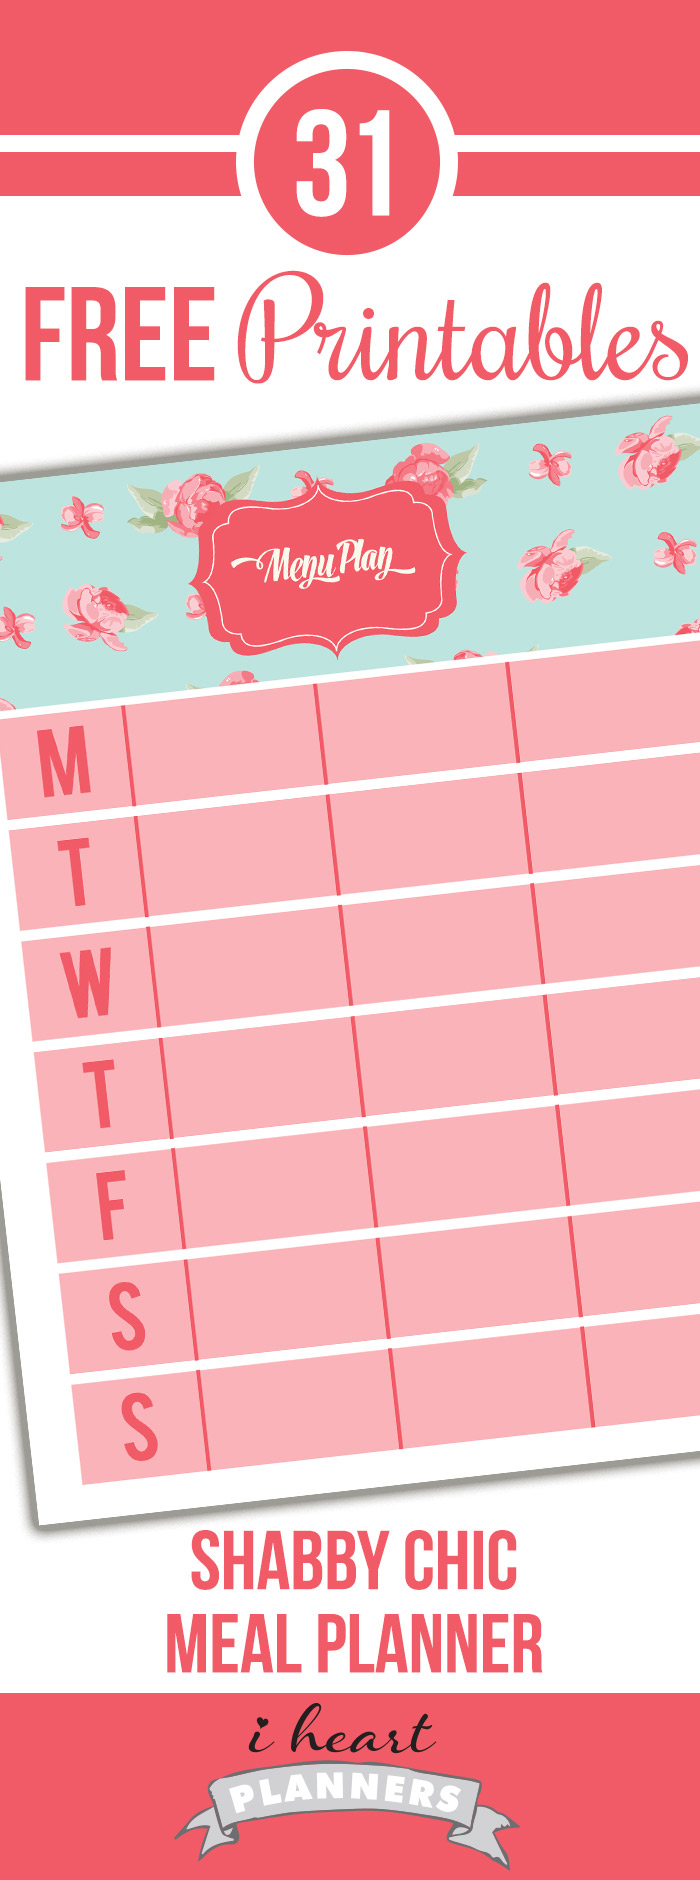 FREE Weekly Menu Planner in a shabby chic style